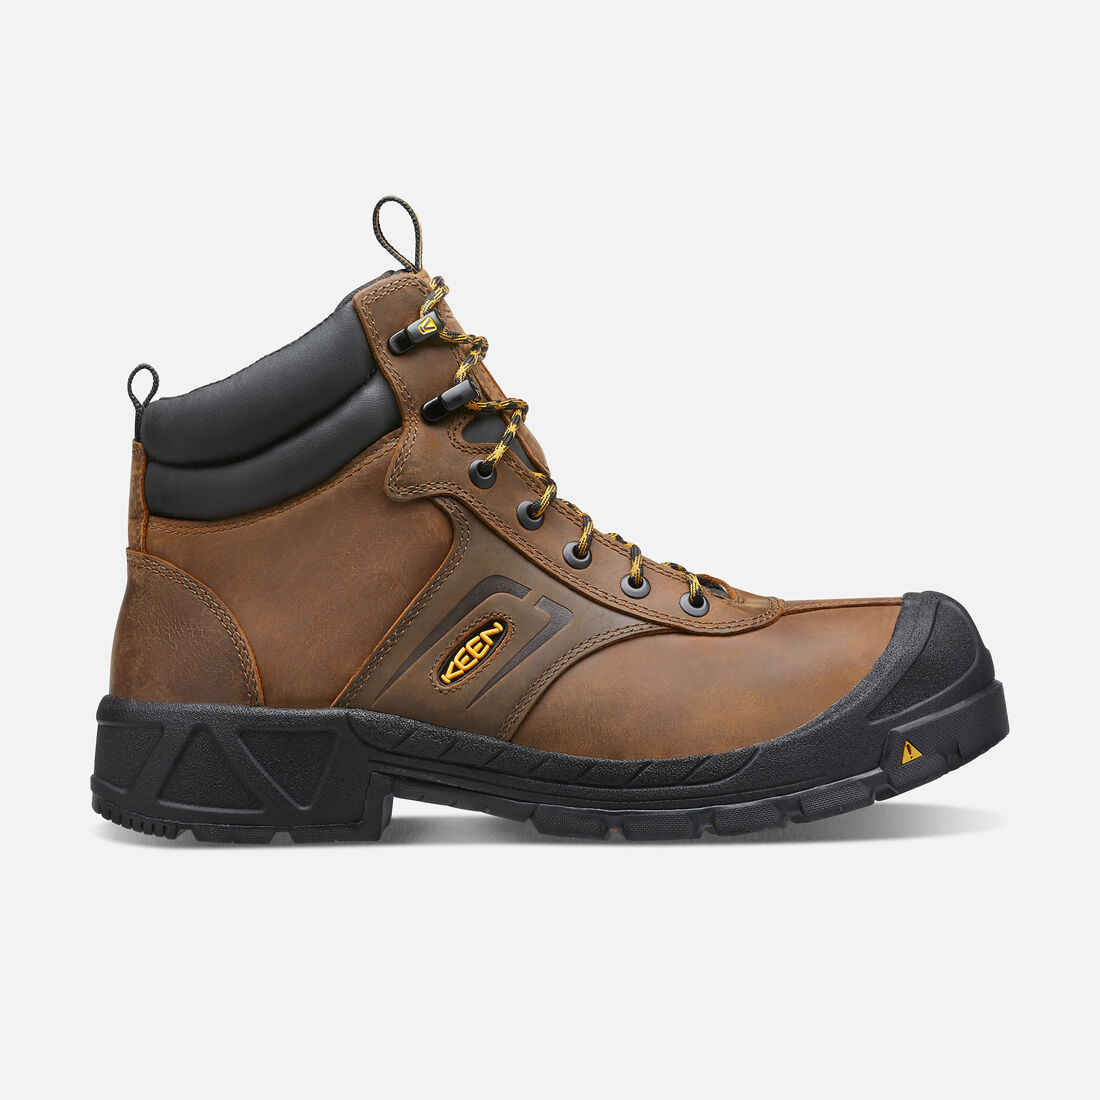 Men's Warren ESD Boot (Steel Toe) in Dark Earth - large view.